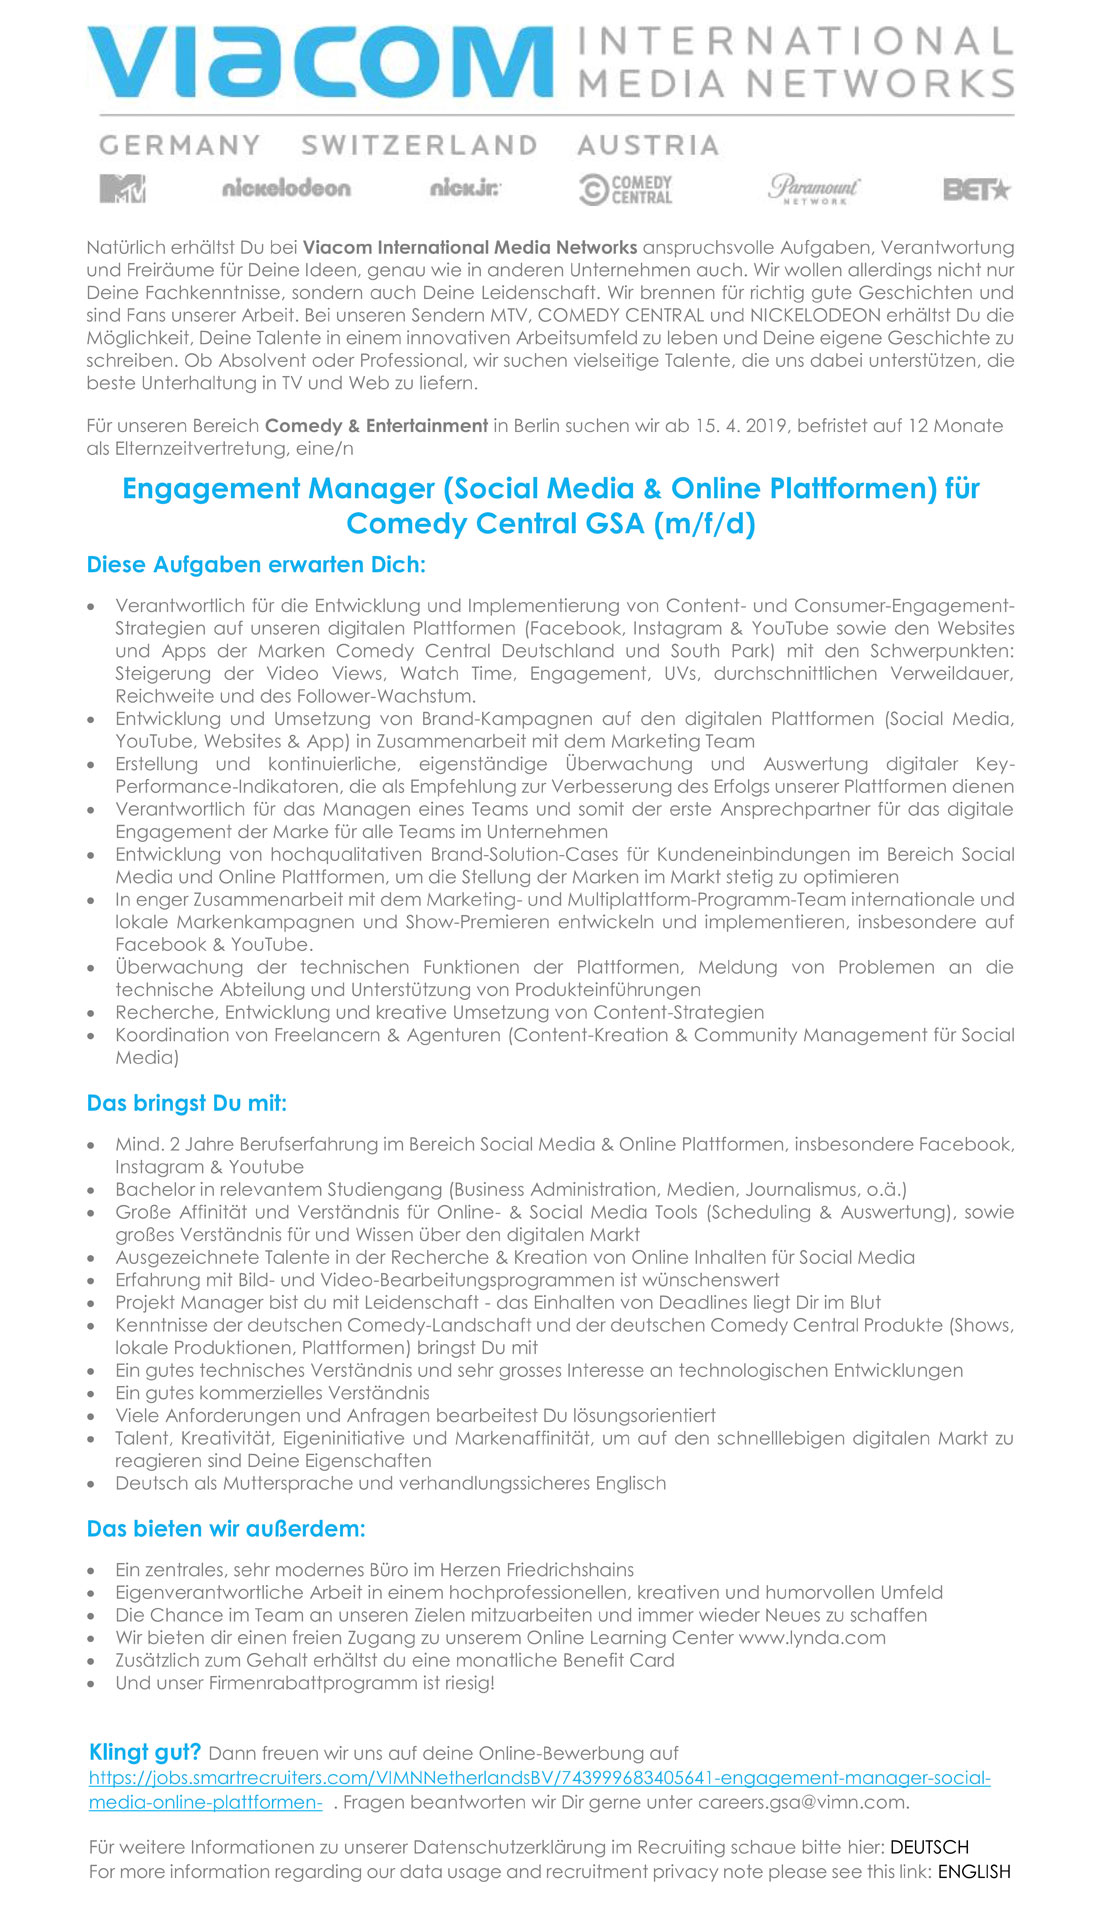 Engagement Manager (Social Media & Online Plattformen für Comedy Central GSA (m/f/d)